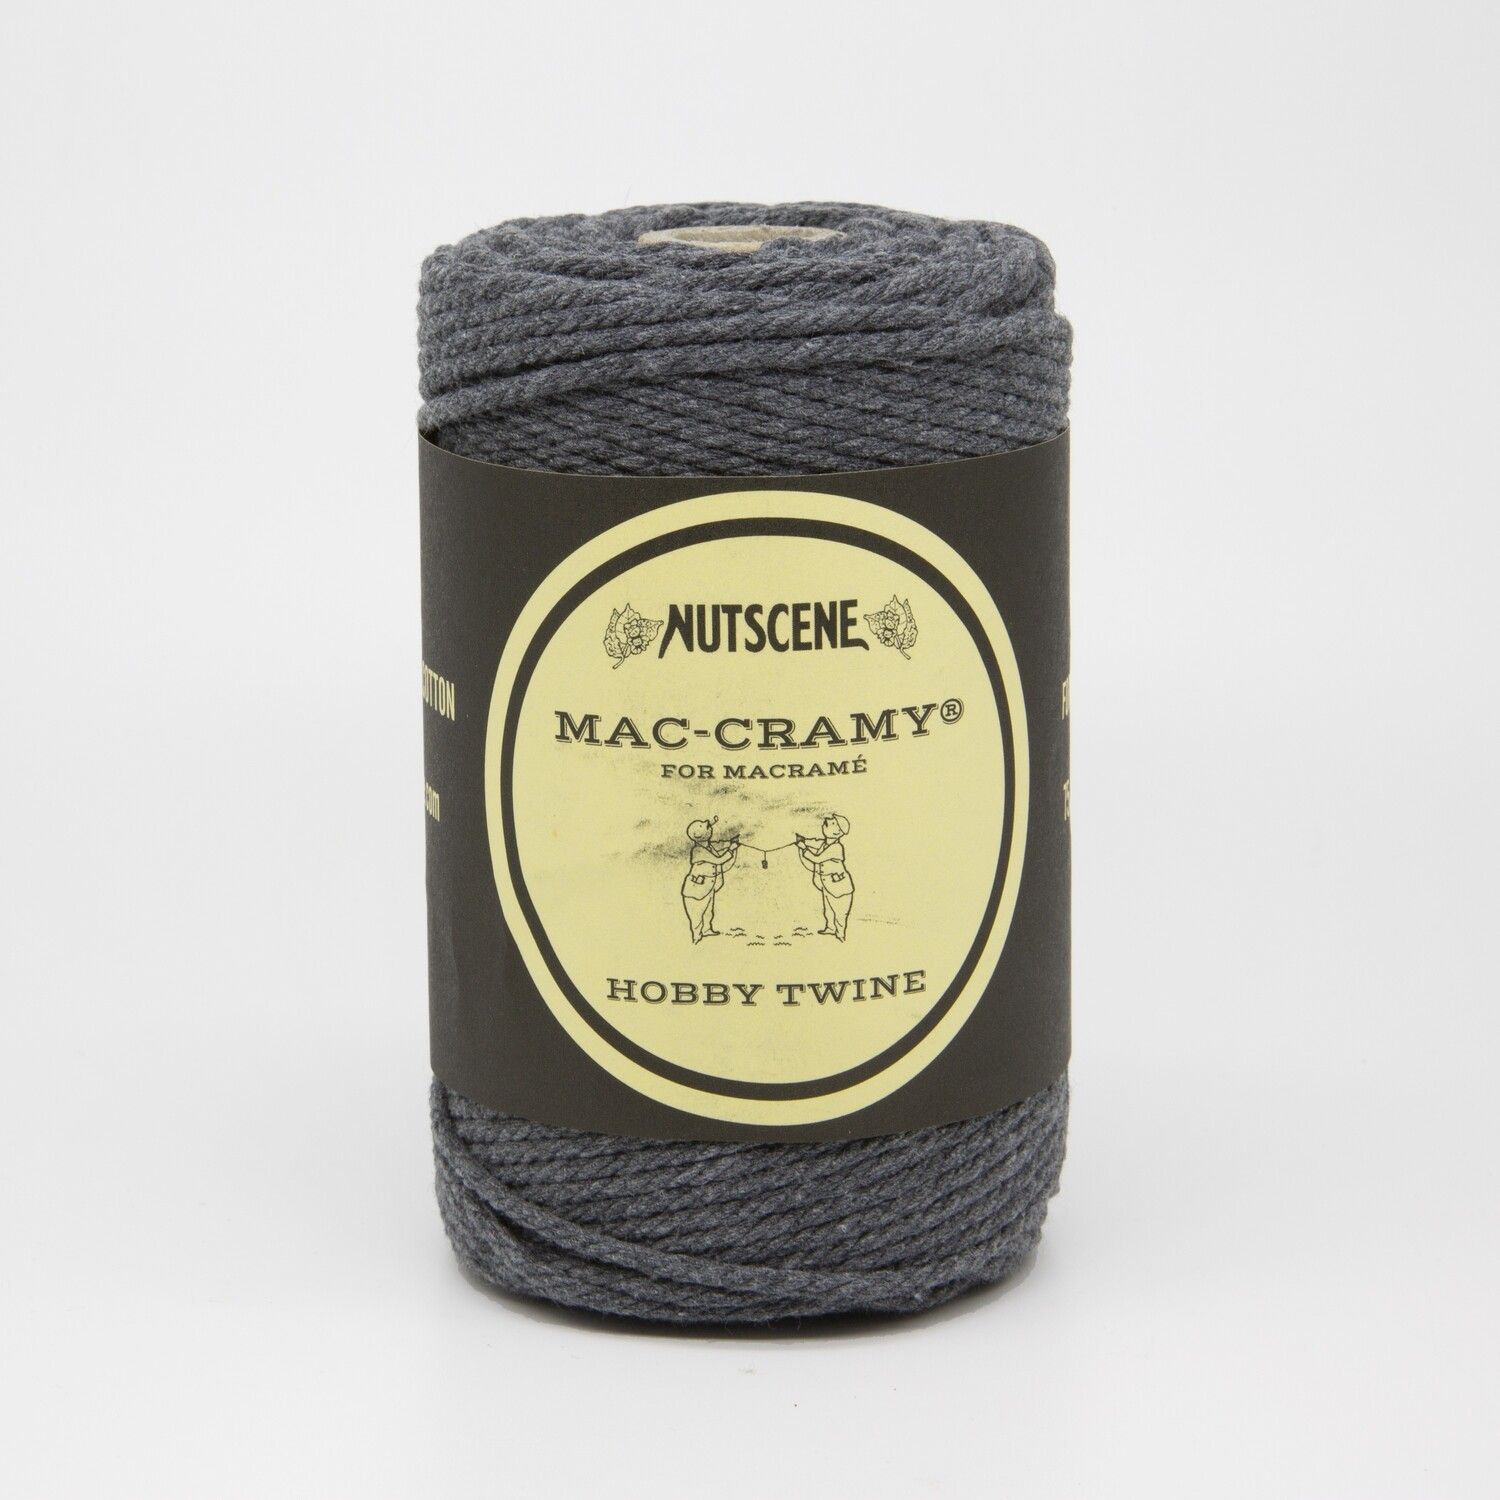 Mac-Cramy® серо-синий 70м